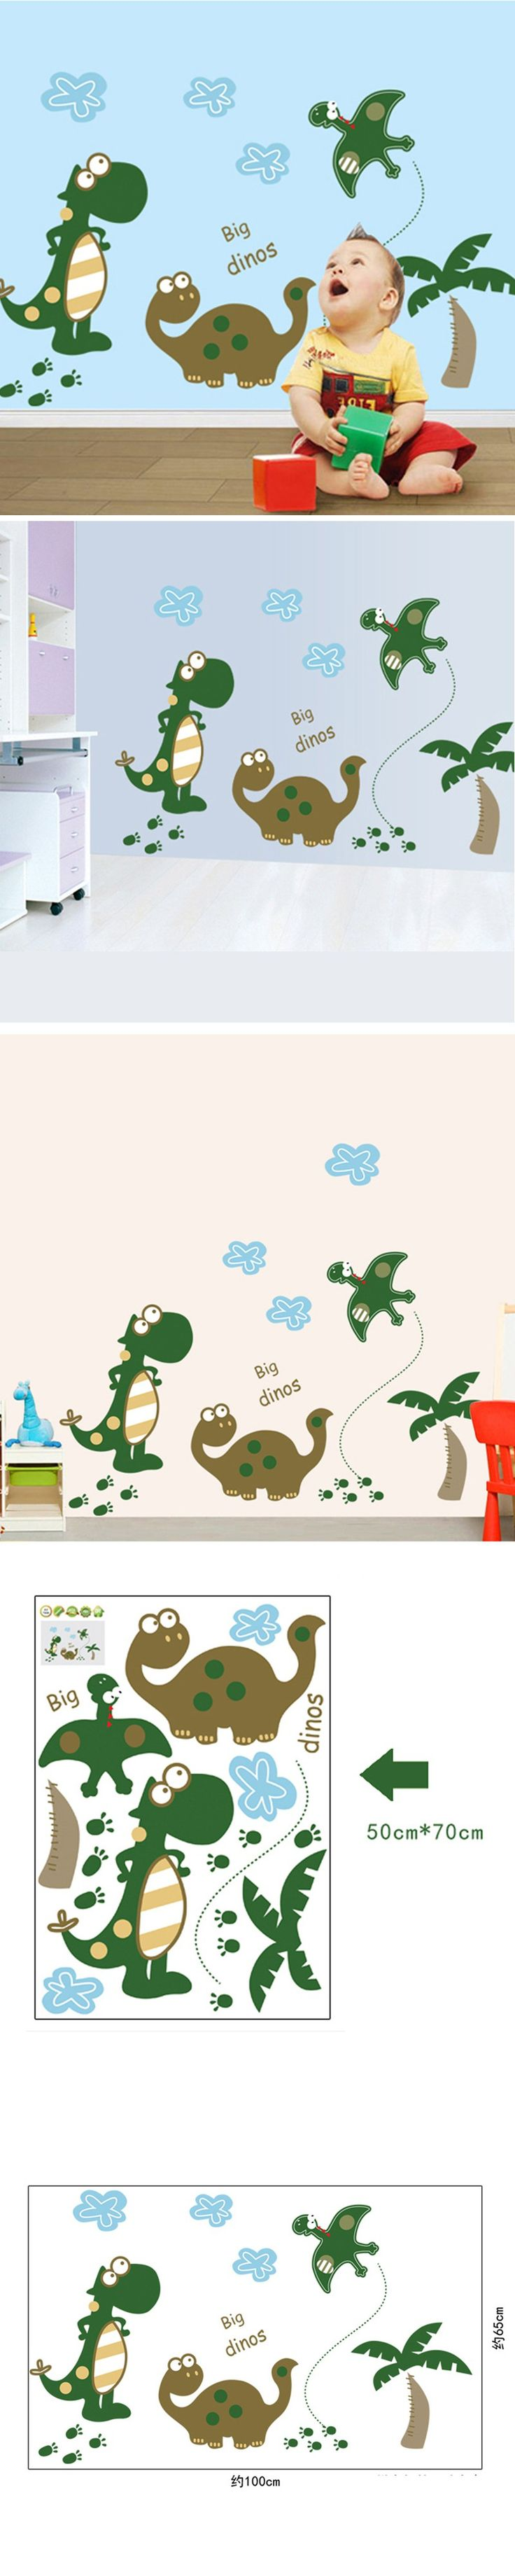 best 25 dinosaur wall stickers ideas on pinterest dinosaur wall fashion cute new cartoon dinosaur wall stickers kids room decorative children removable pvc home decor wallpapers e007